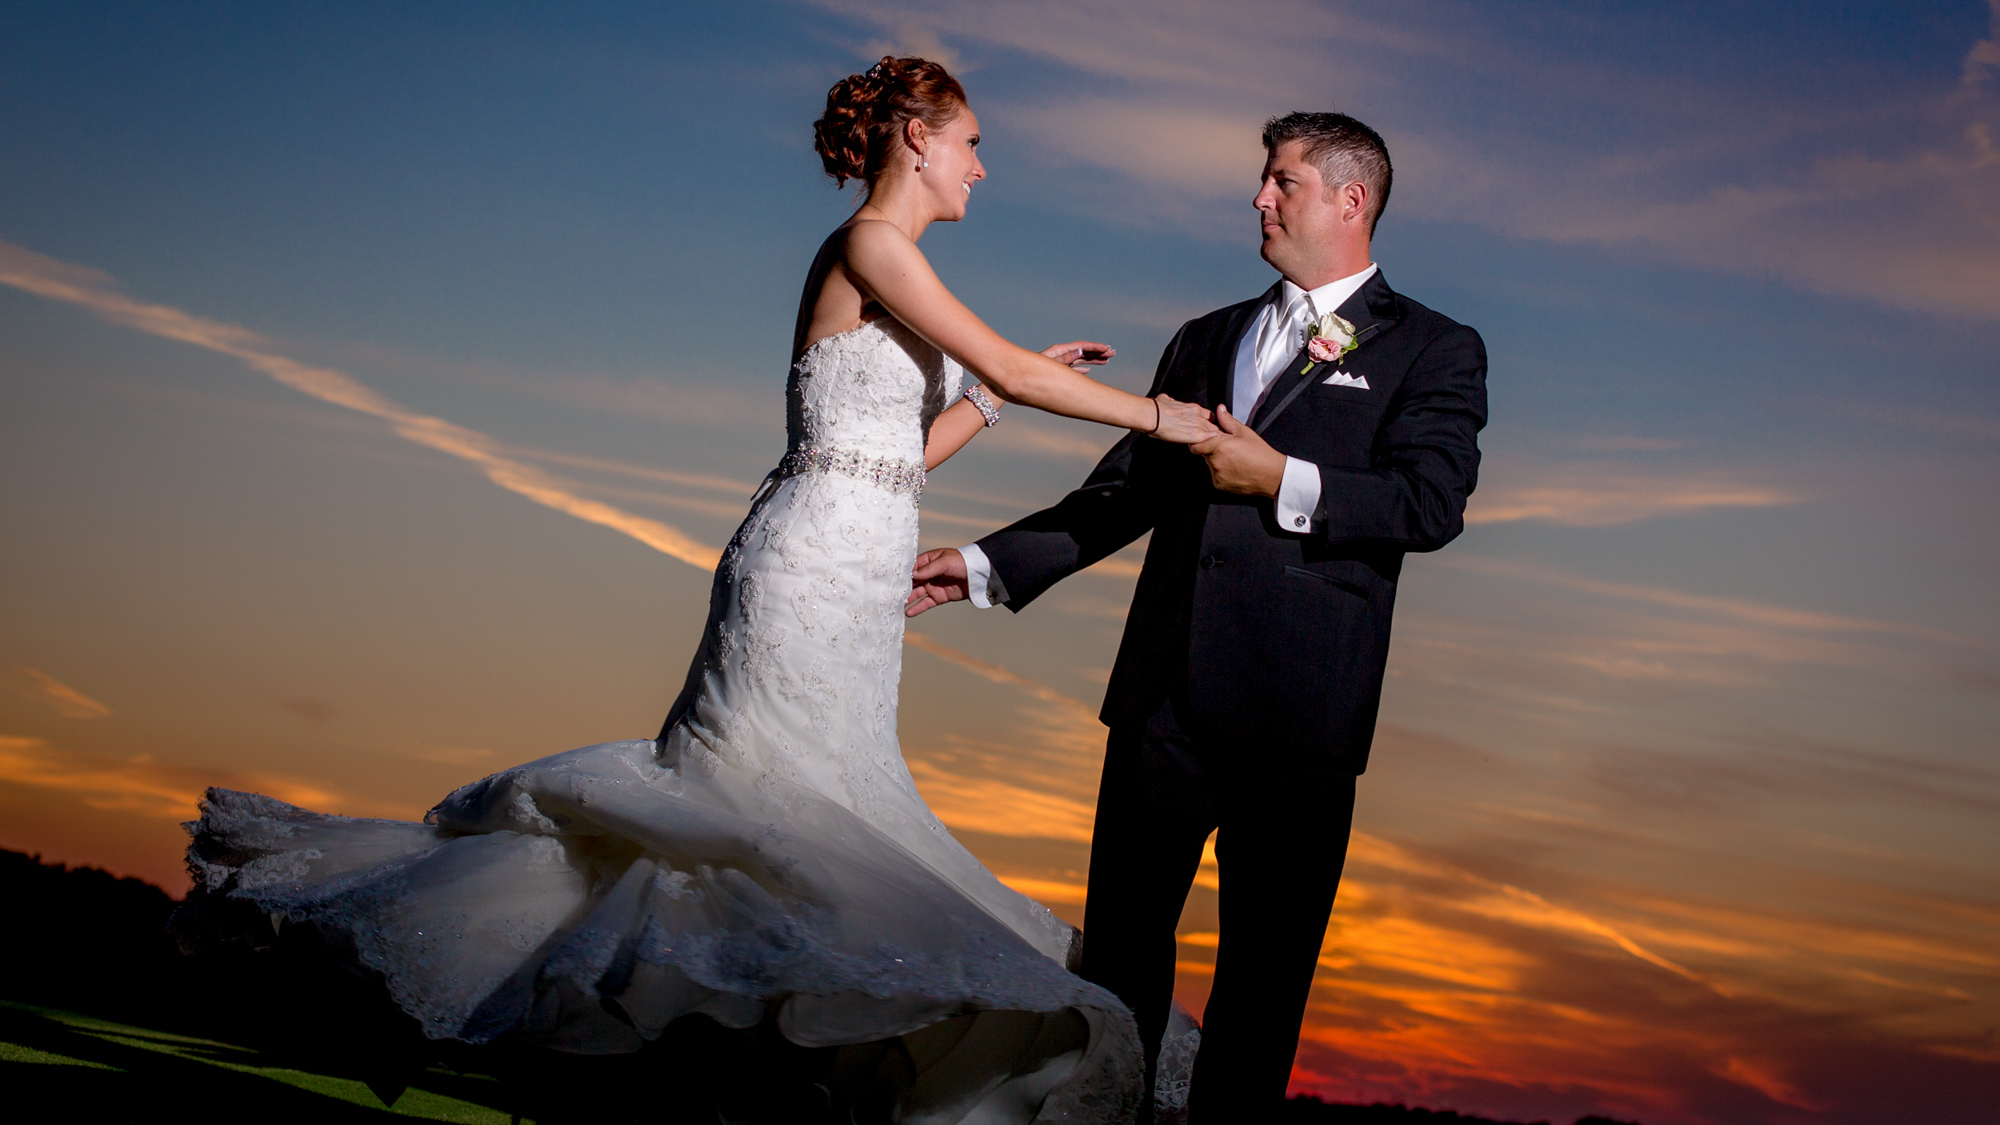 Dallas wedding video still frame of a groom spinning his bride in the sunset.